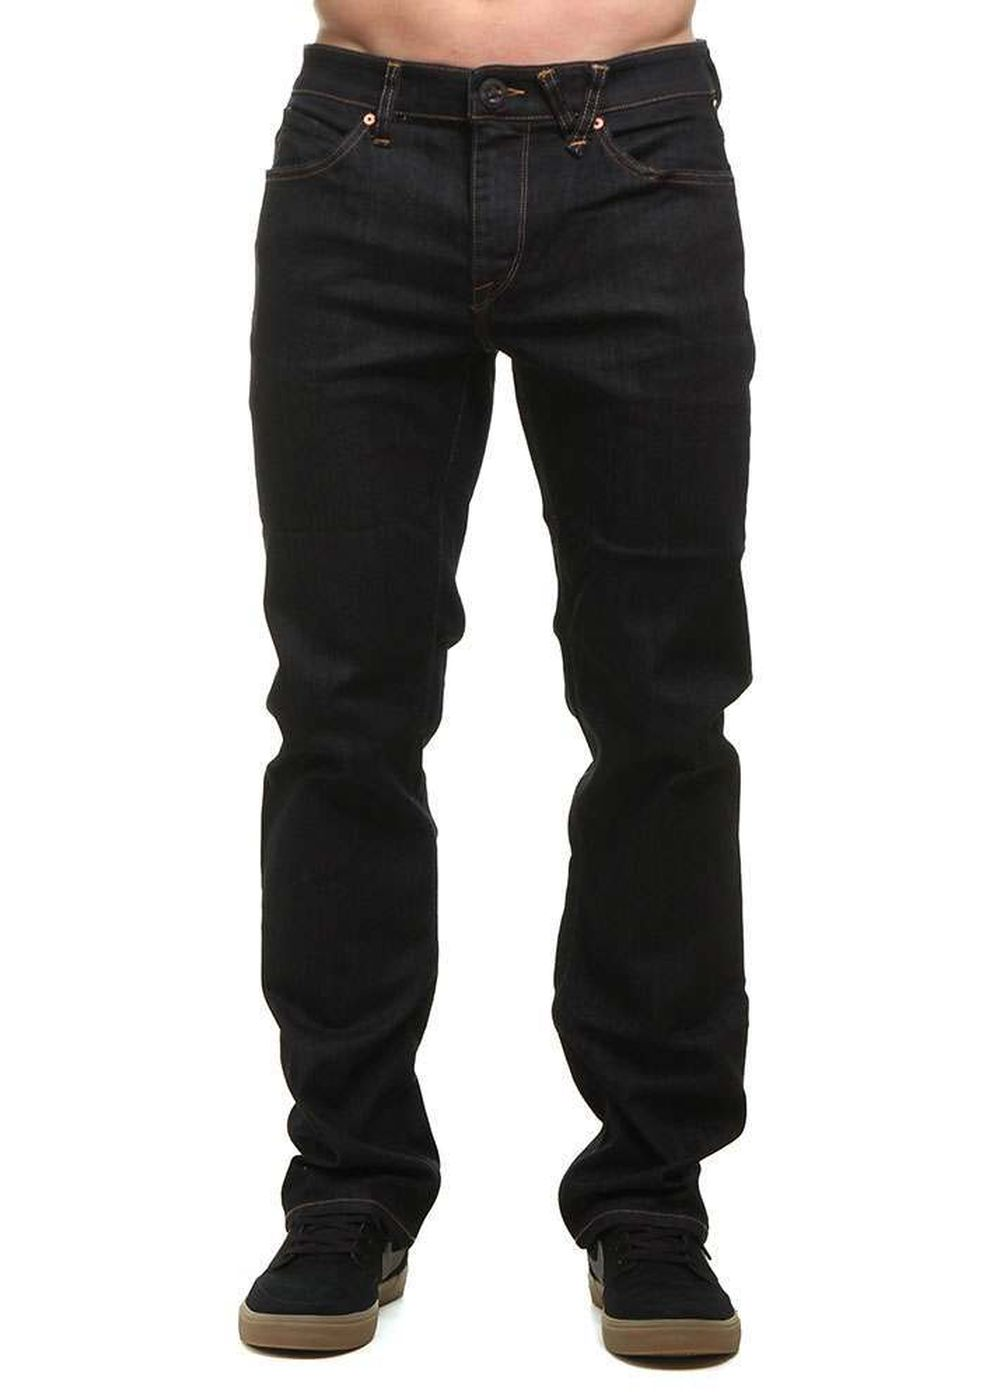 volcom-solver-jeans-rinse